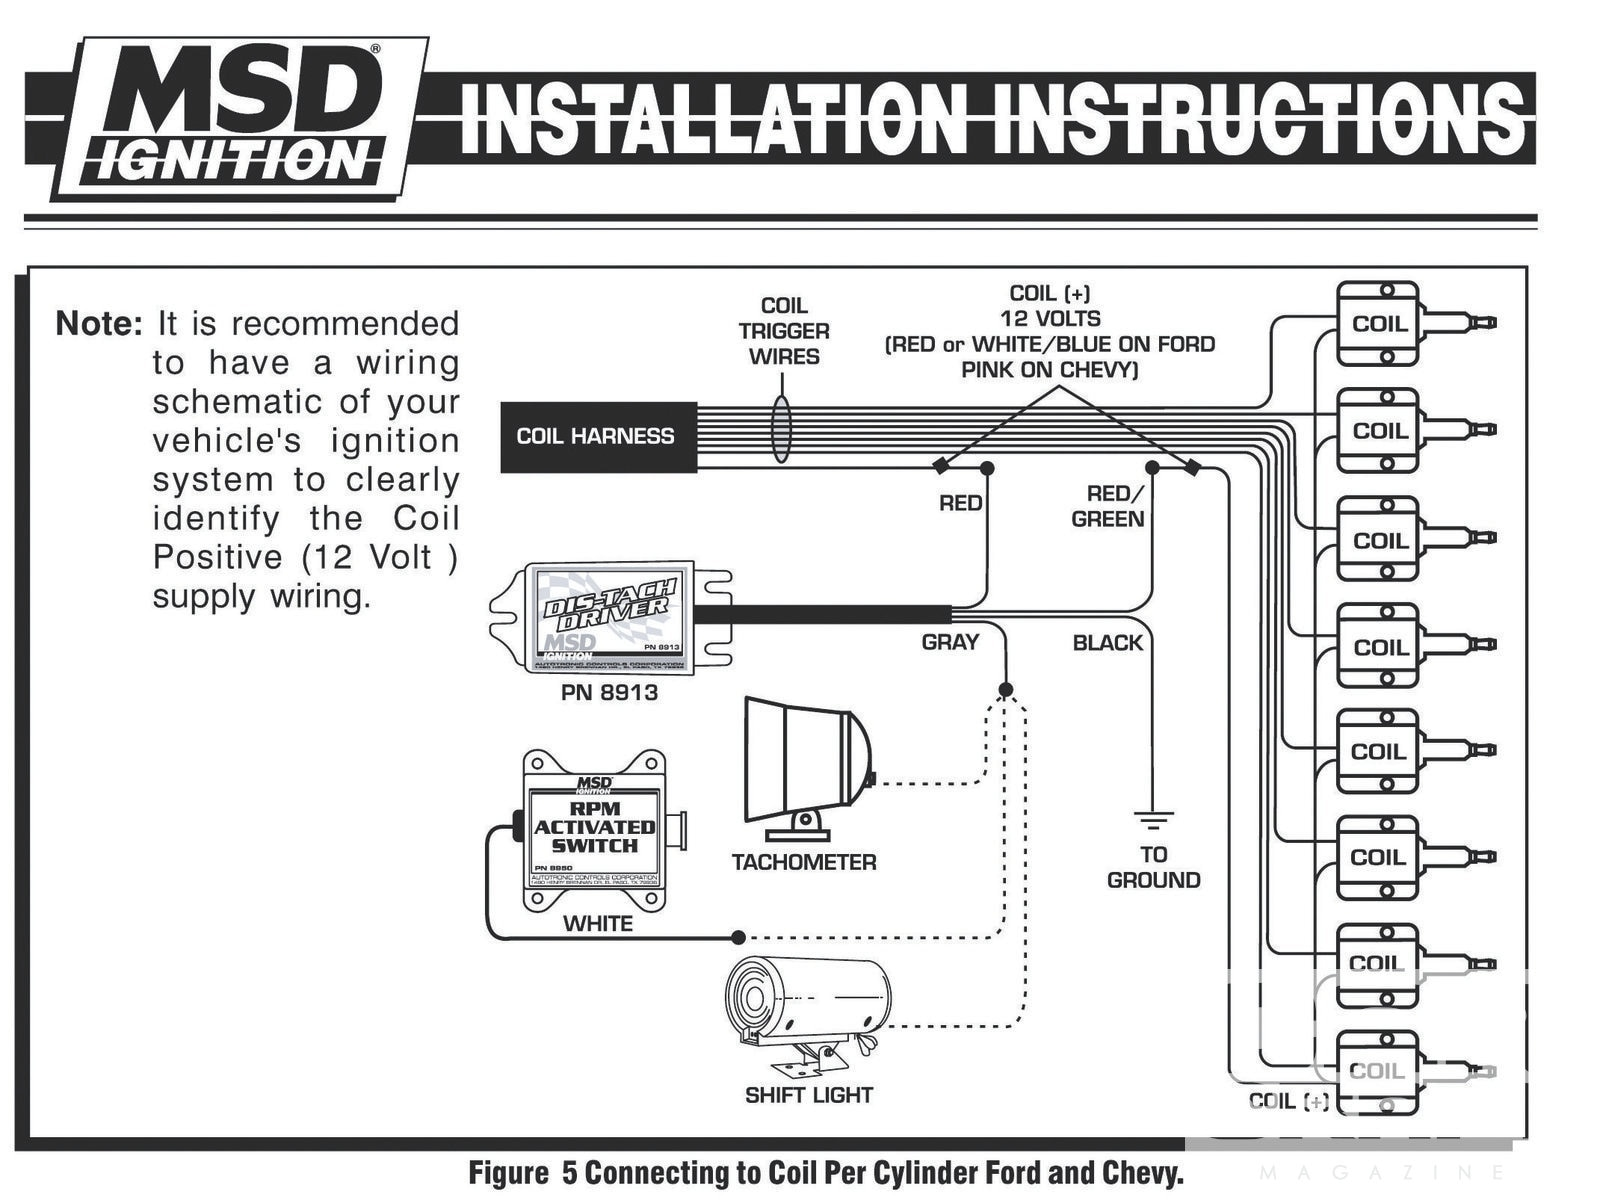 ccrp 1202 quick tech electronic ignition tach install 003?resize\\\\\